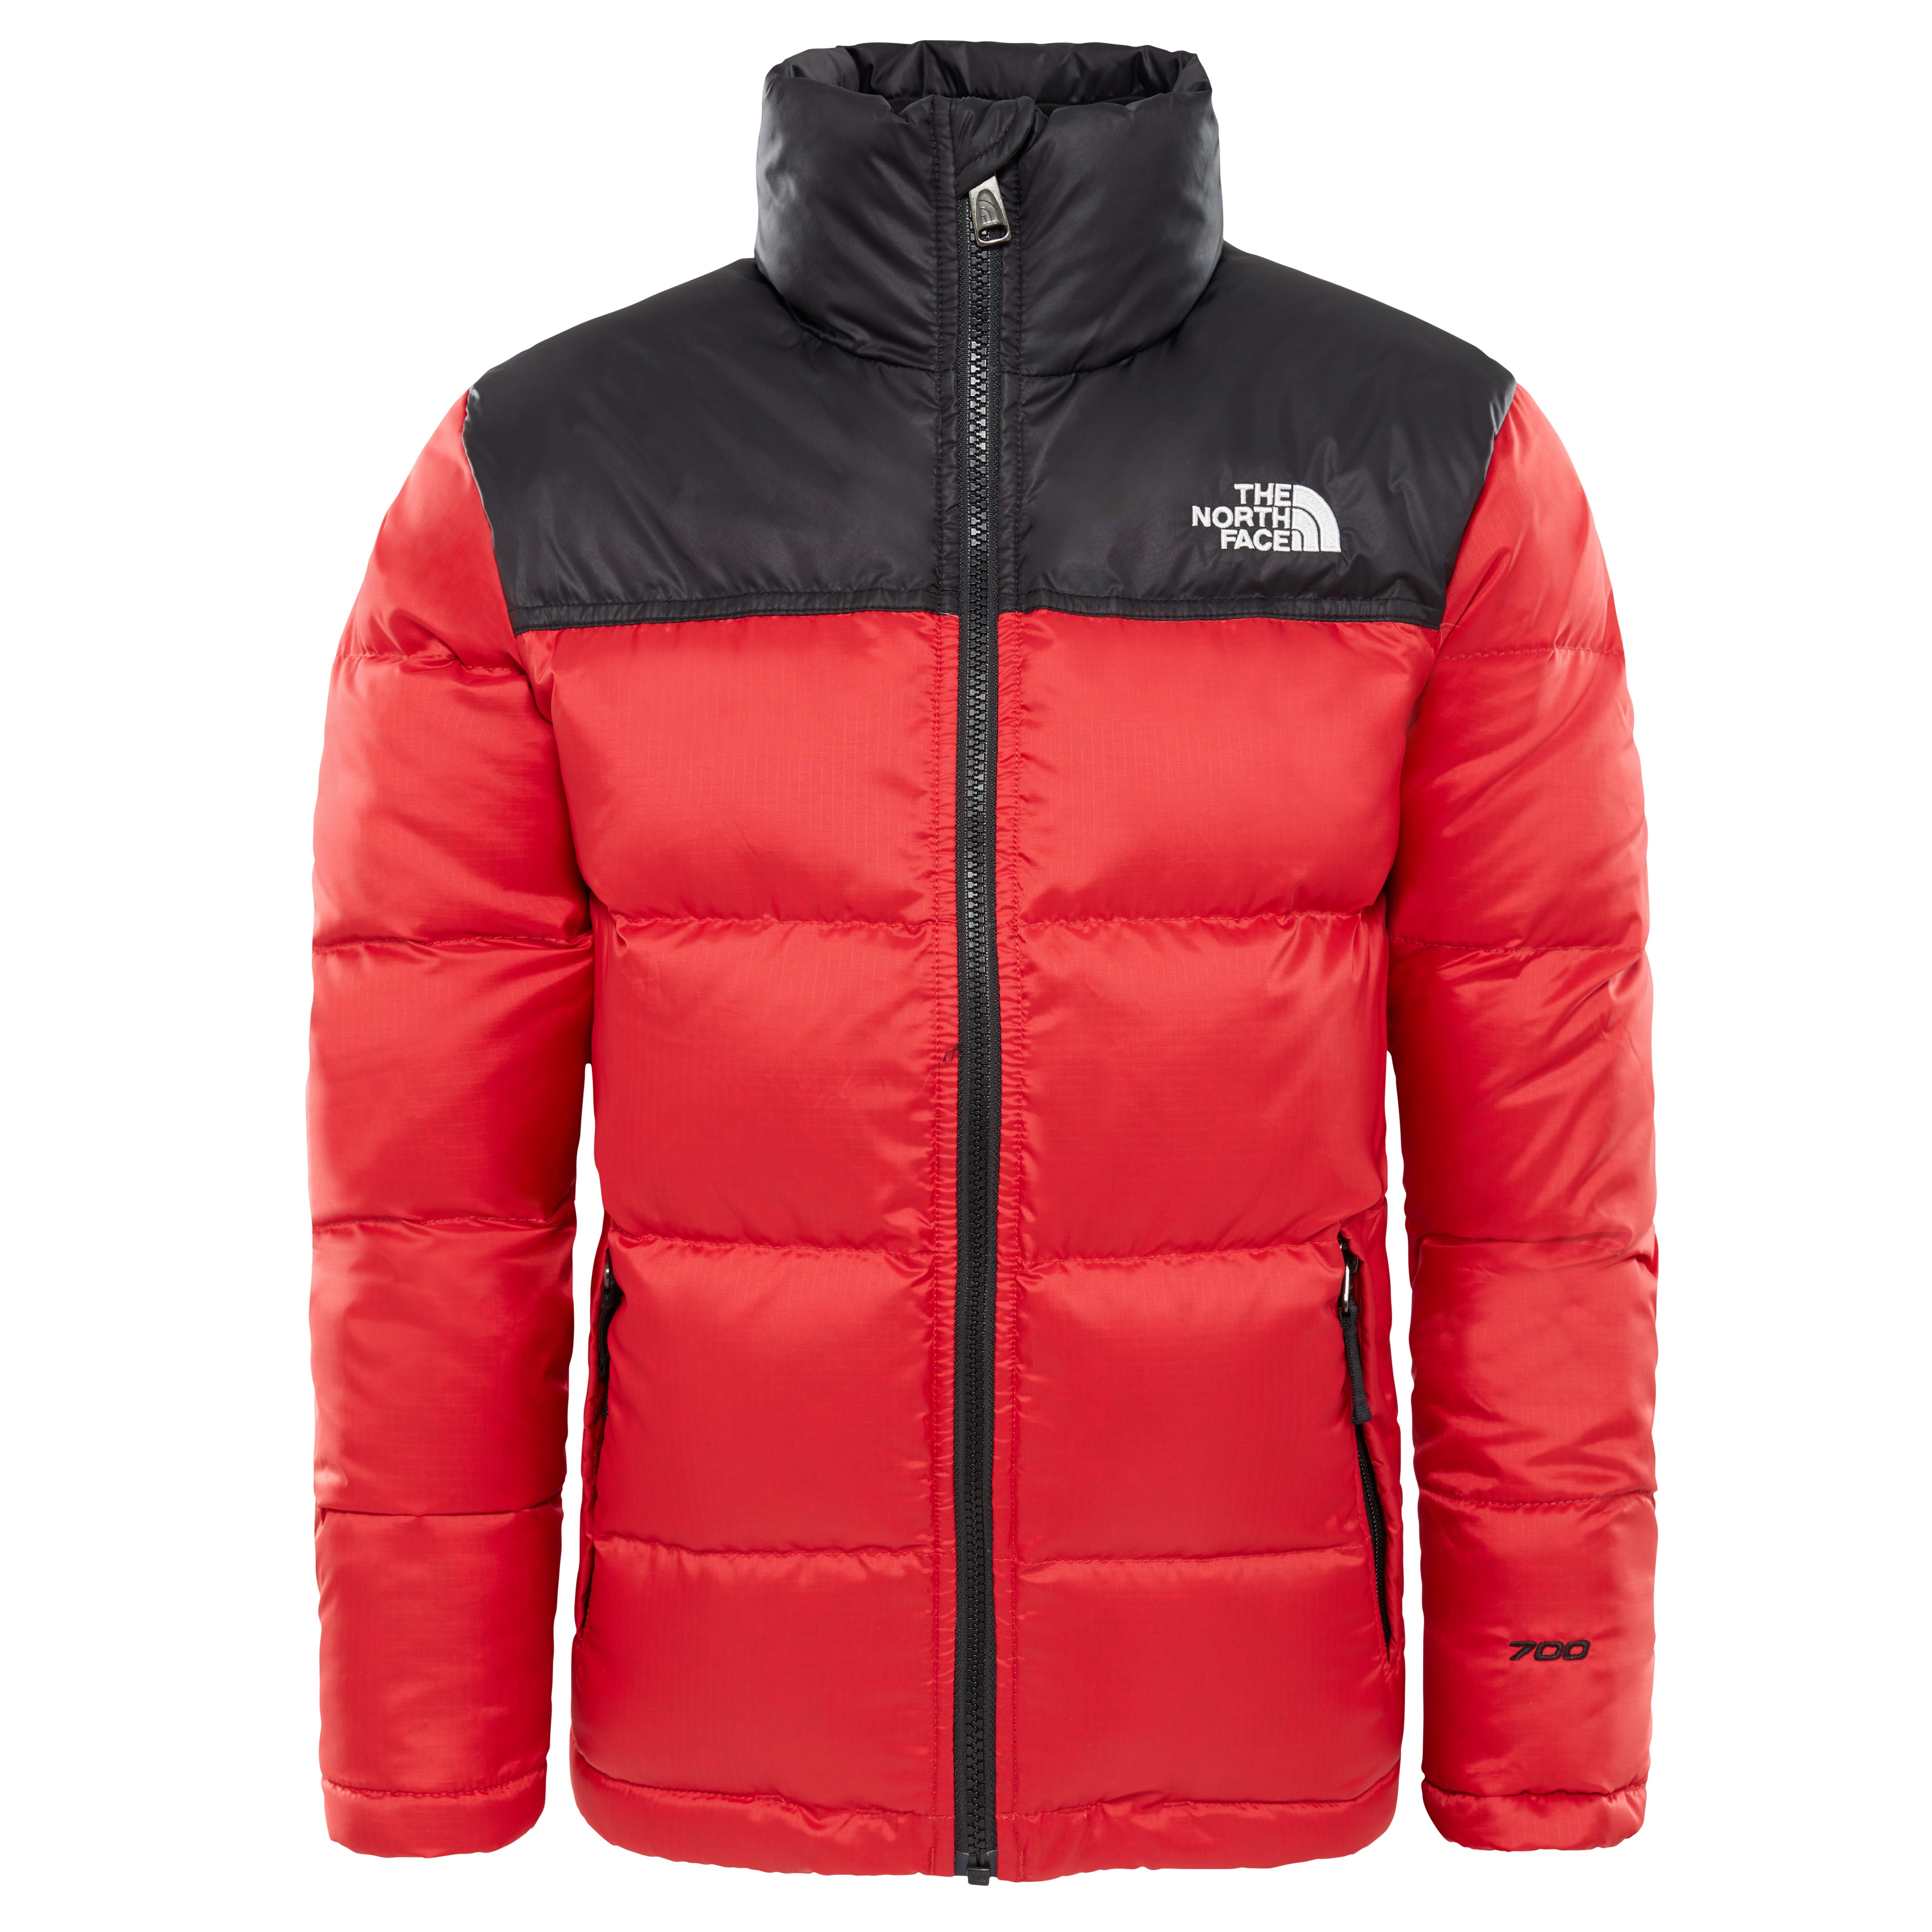 THE NORTH FACE YOUTH BOY S NUPSE DOWN JKT - gallery 0 889800c63fb6